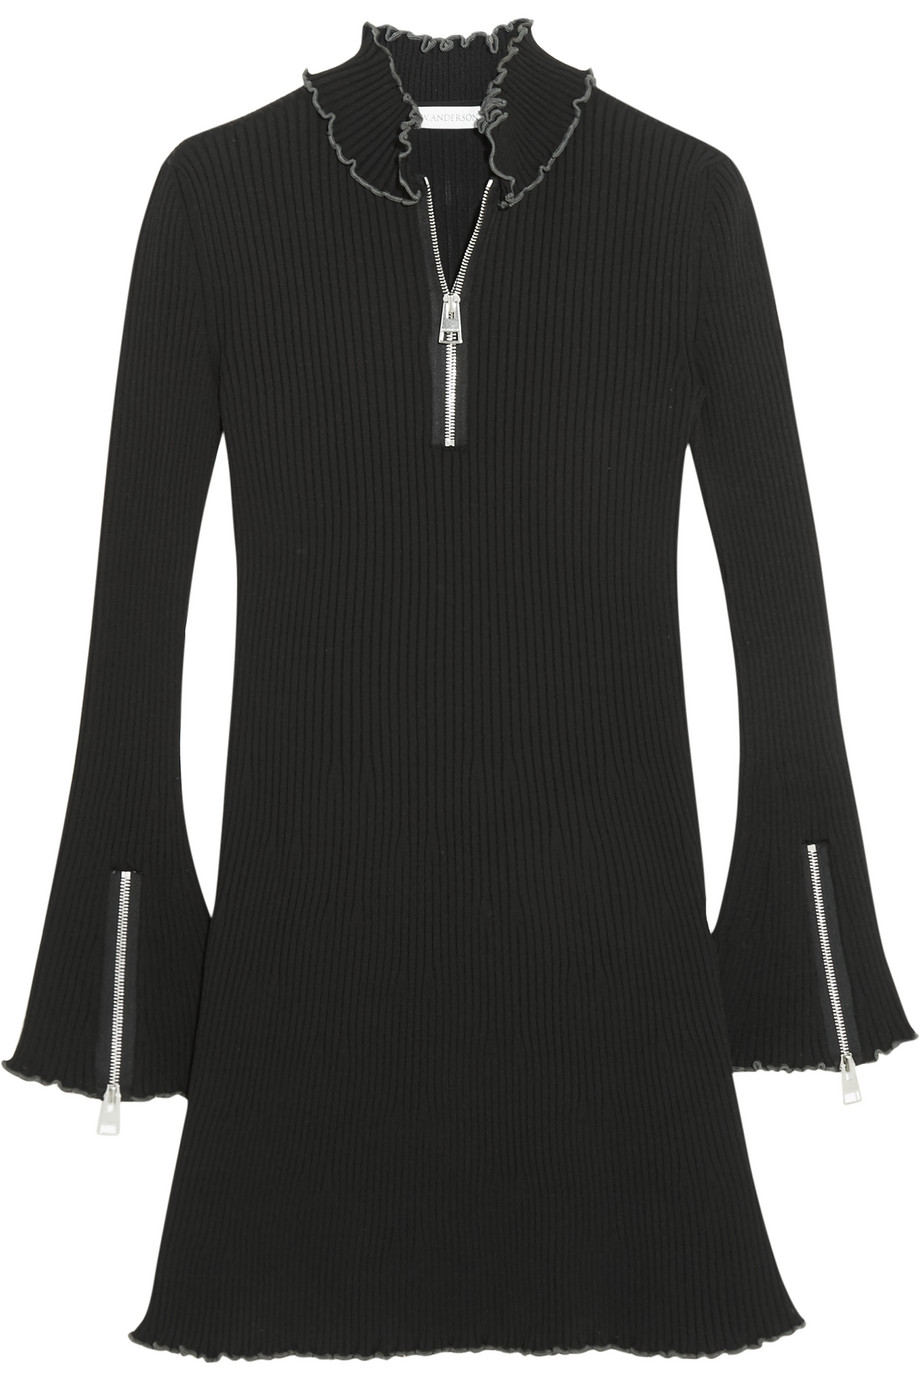 J.W.Anderson Ruffle-Trimmed Ribbed Jersey Mini Dress, Size: XS